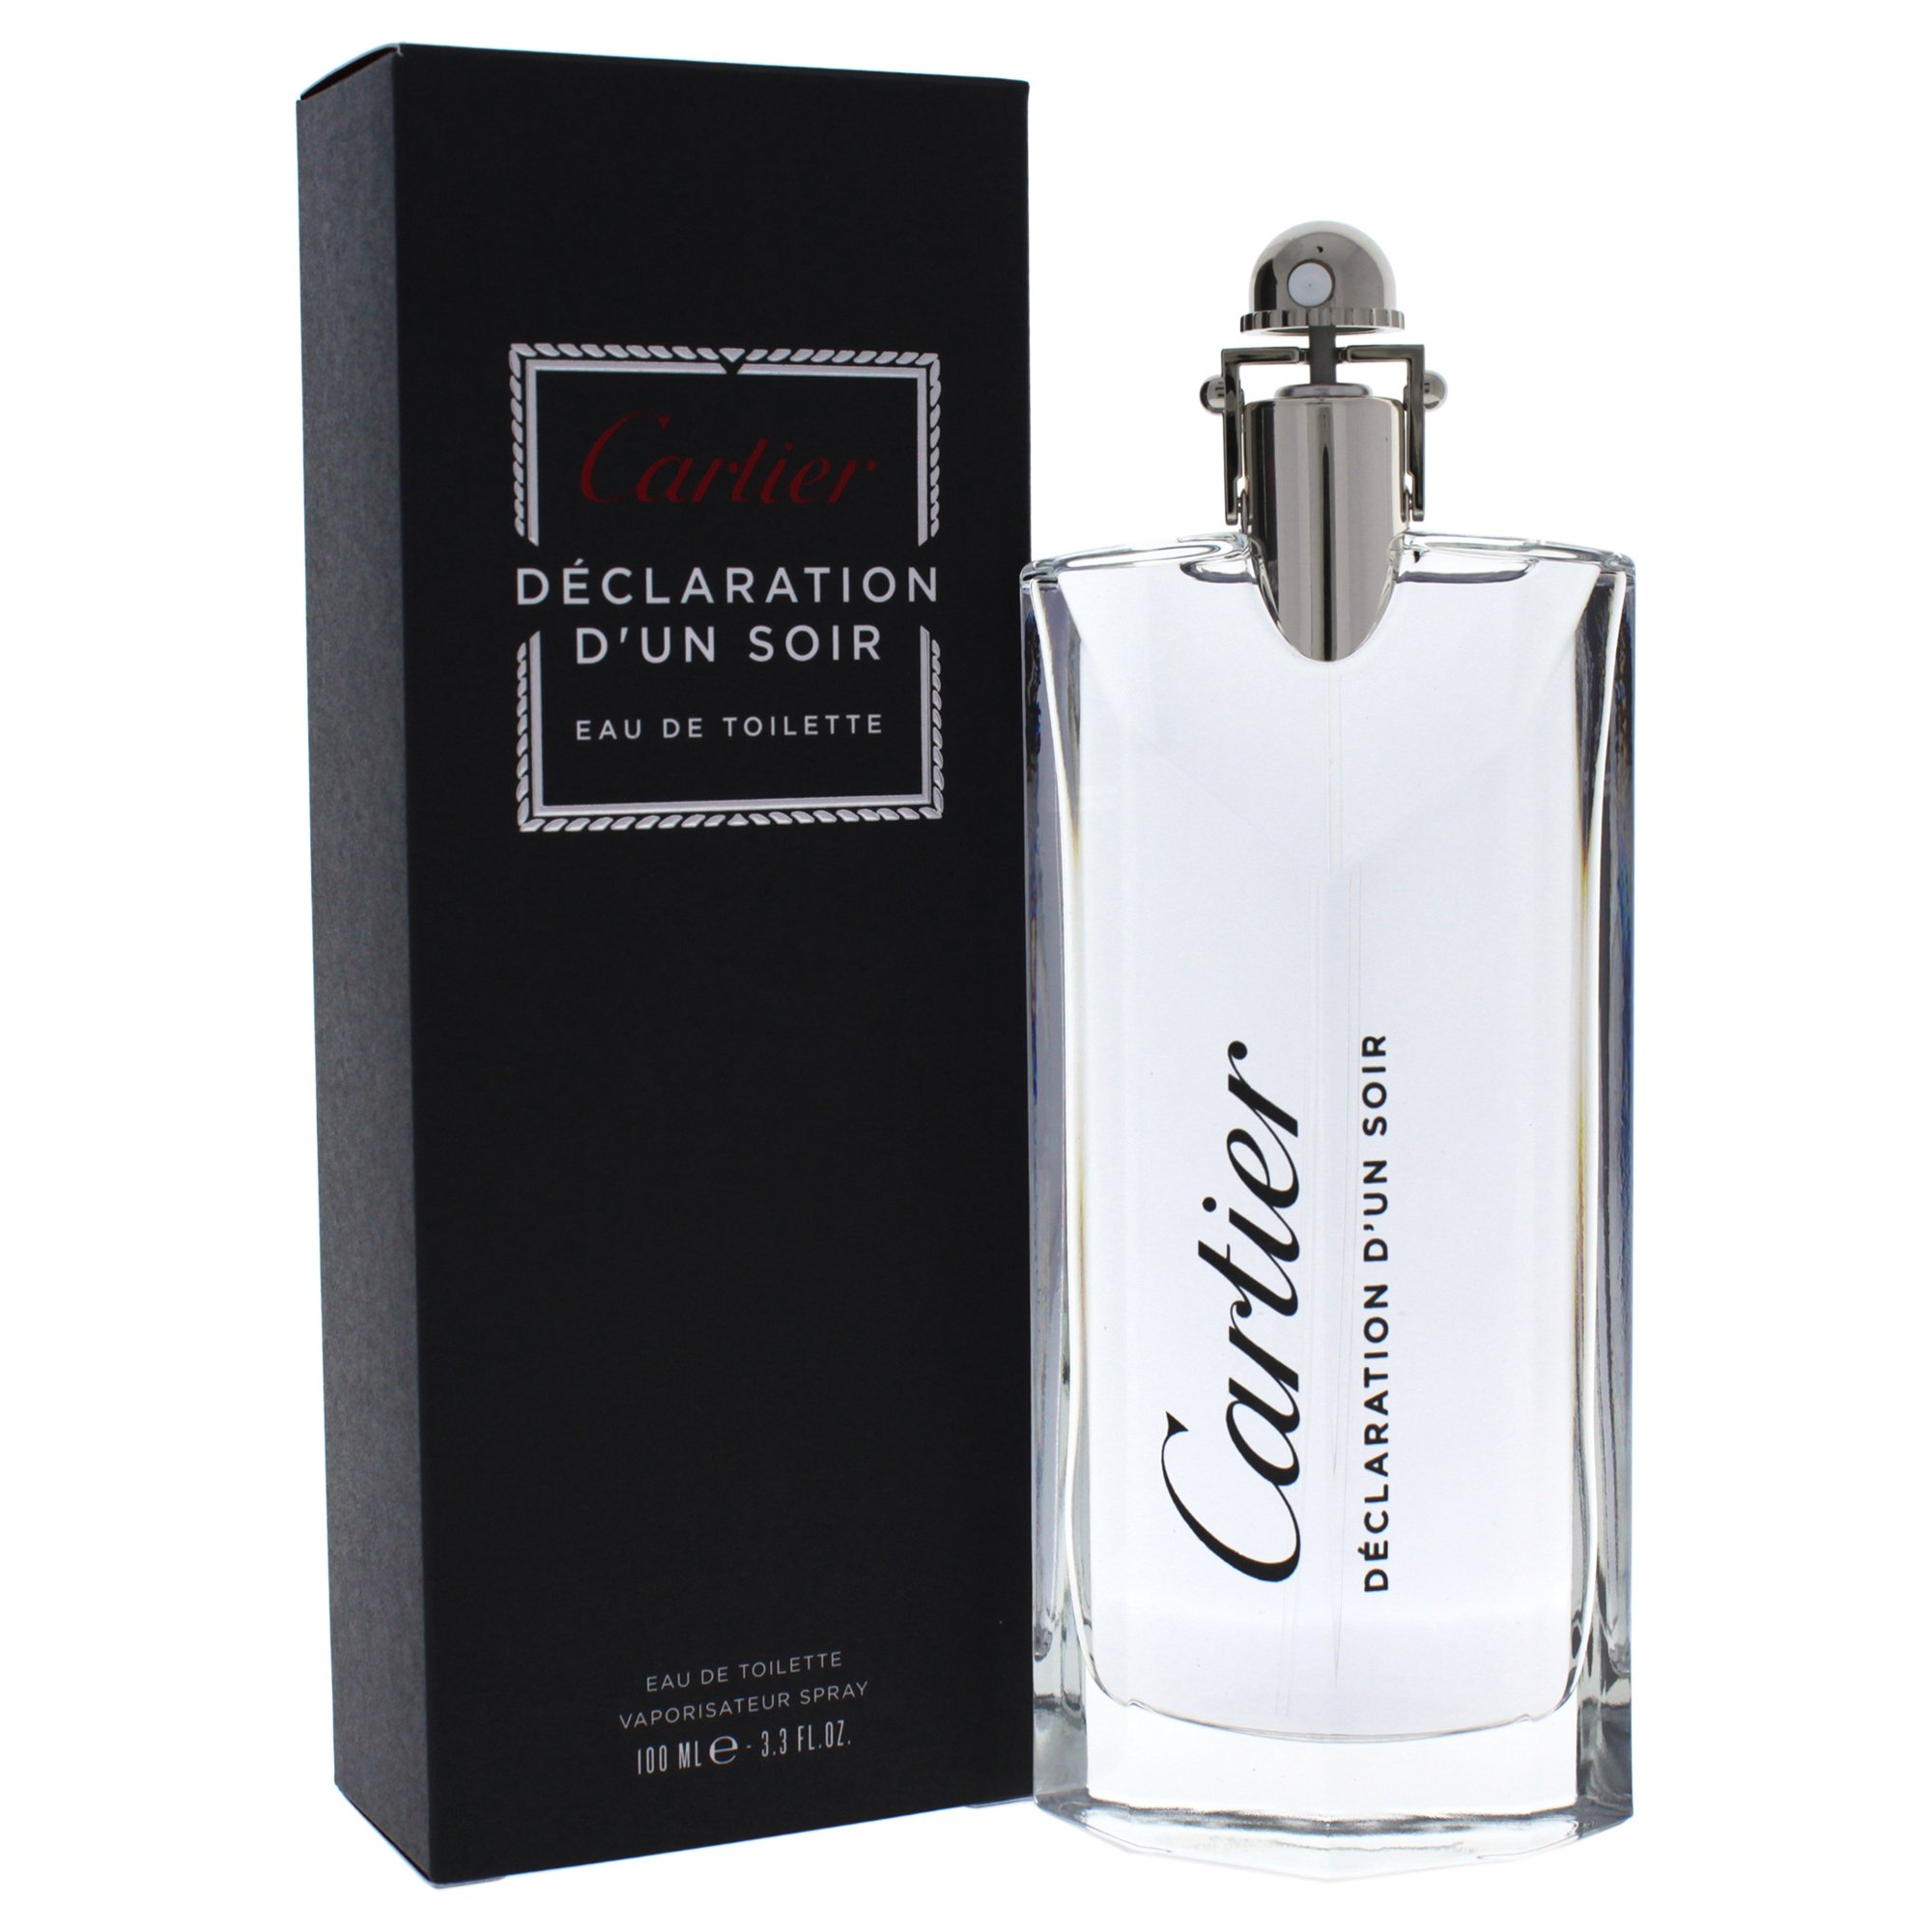 8a97d43b508 Amazon.com   Cartier Declaration Essence Eau de Toilette Spray for ...